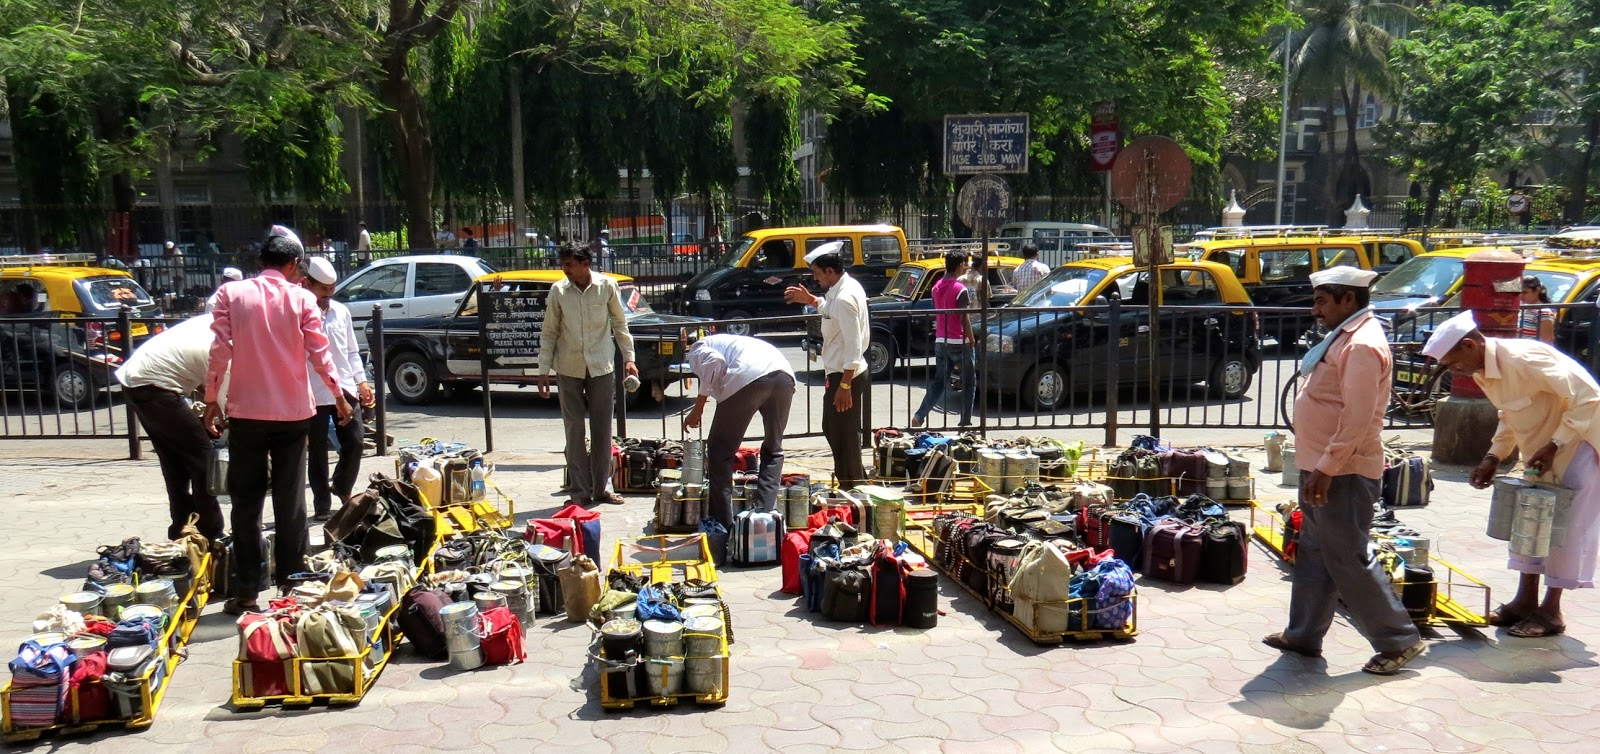 mumbai dabbawalas Mumbai's pervasive dabbawalas, the tiffin careers of the city, have also suspended their work today in entire city we did not collect the tiffins today, because of.